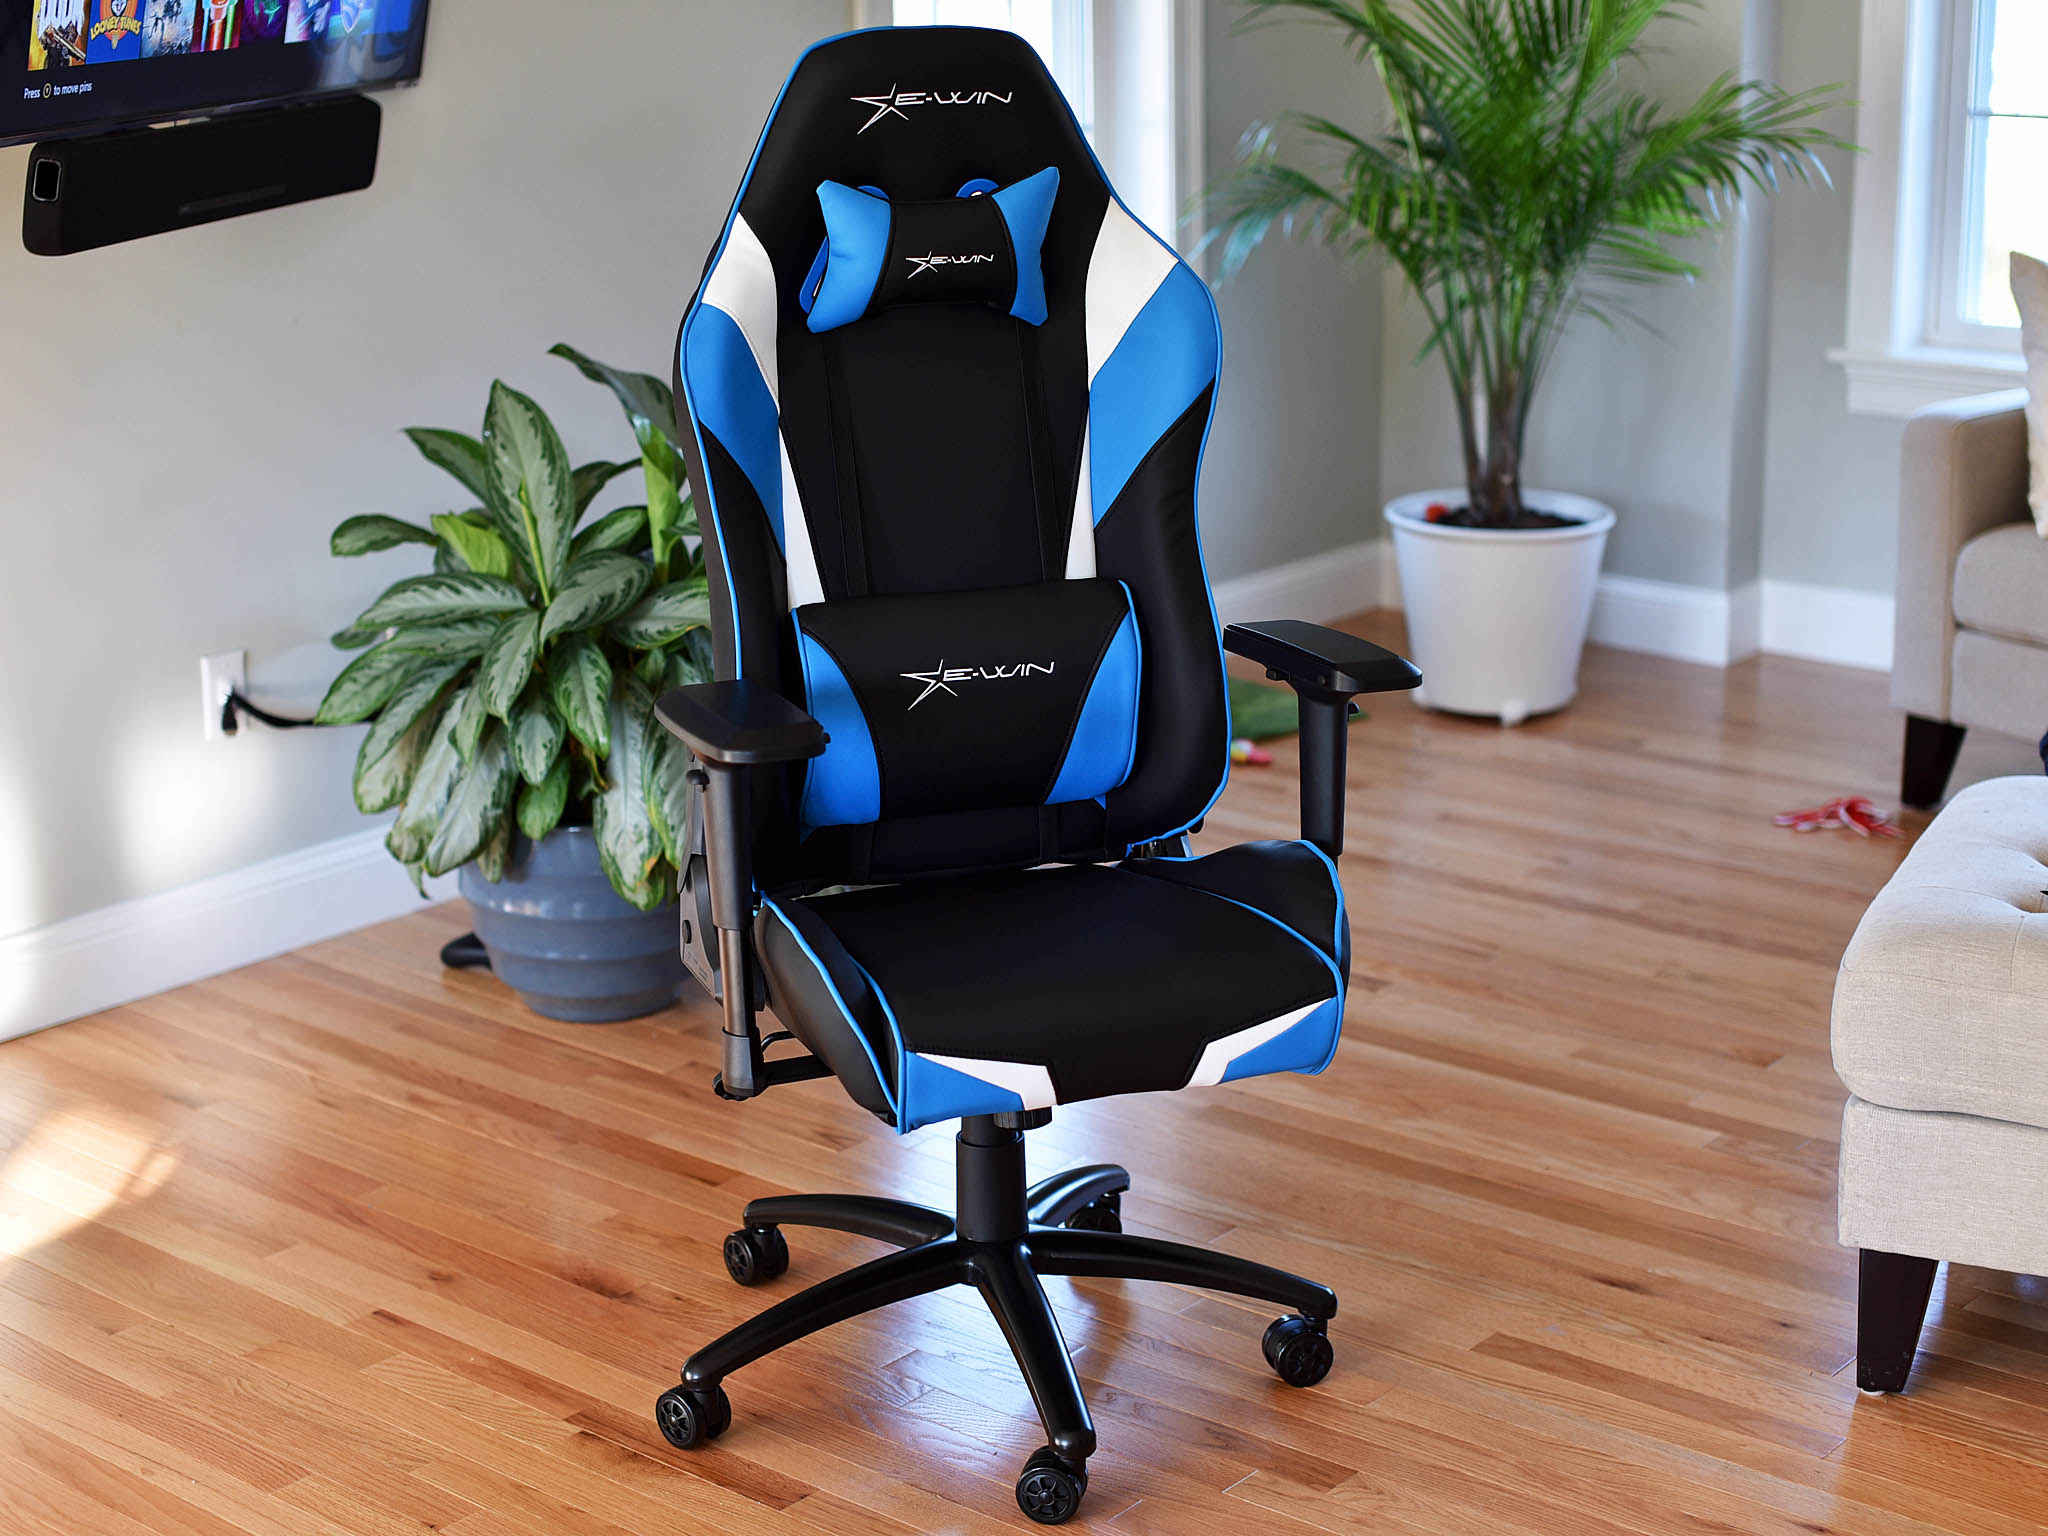 Most Comfortable Chair For Gaming Ewin Champion Series Gaming Chair Provides Comfort And